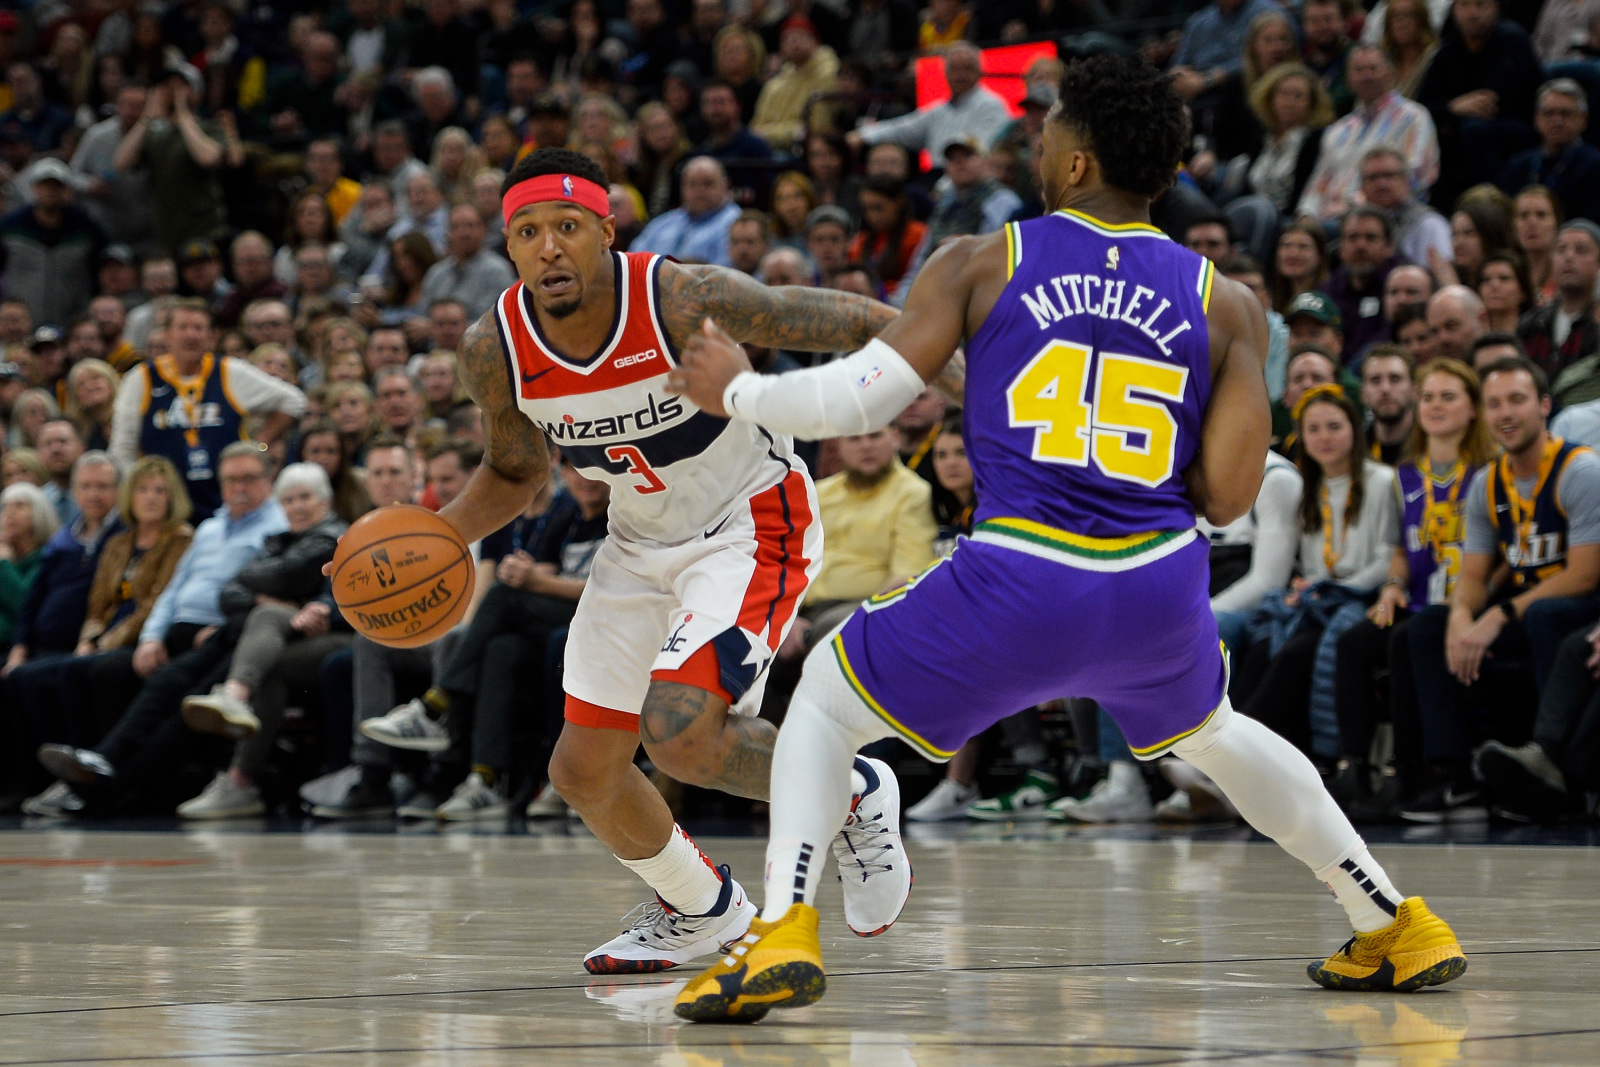 Can Donovan Mitchell out-duel Bradley Beal in tonight's bout?